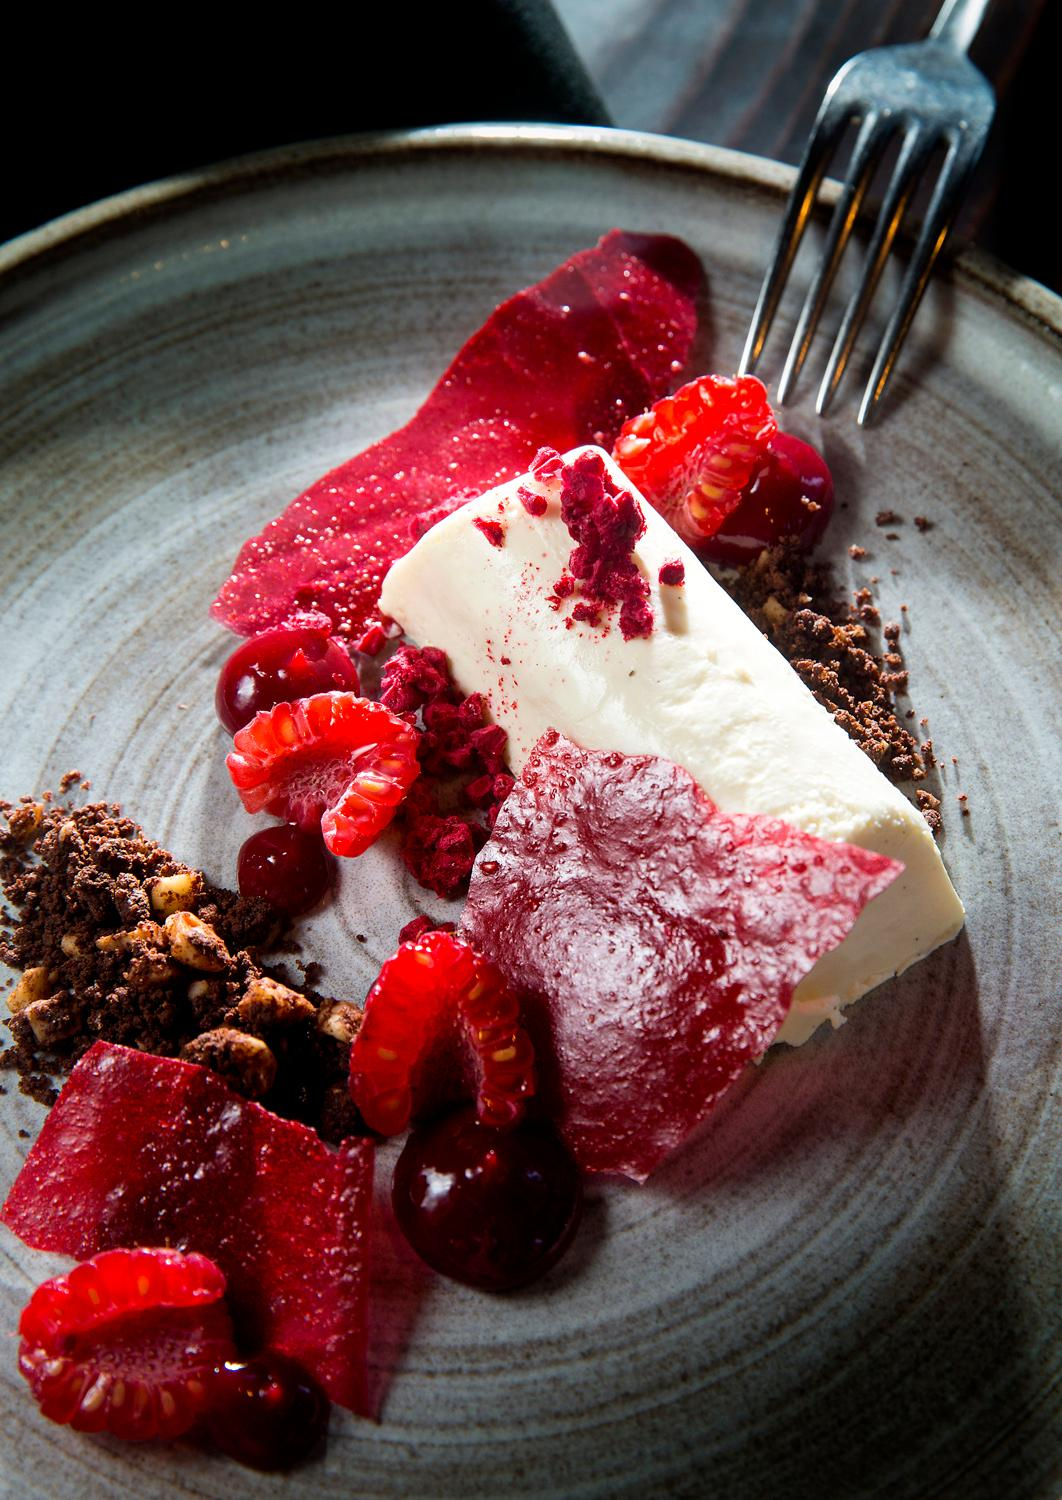 The Vanilla Cheesecake, with raspberry gel, fresh raspberries, and chocolate hazelnut streusel, at Outlier, located at 1101 4th Ave, Seattle. (Sy Bean / Seattle Refined)